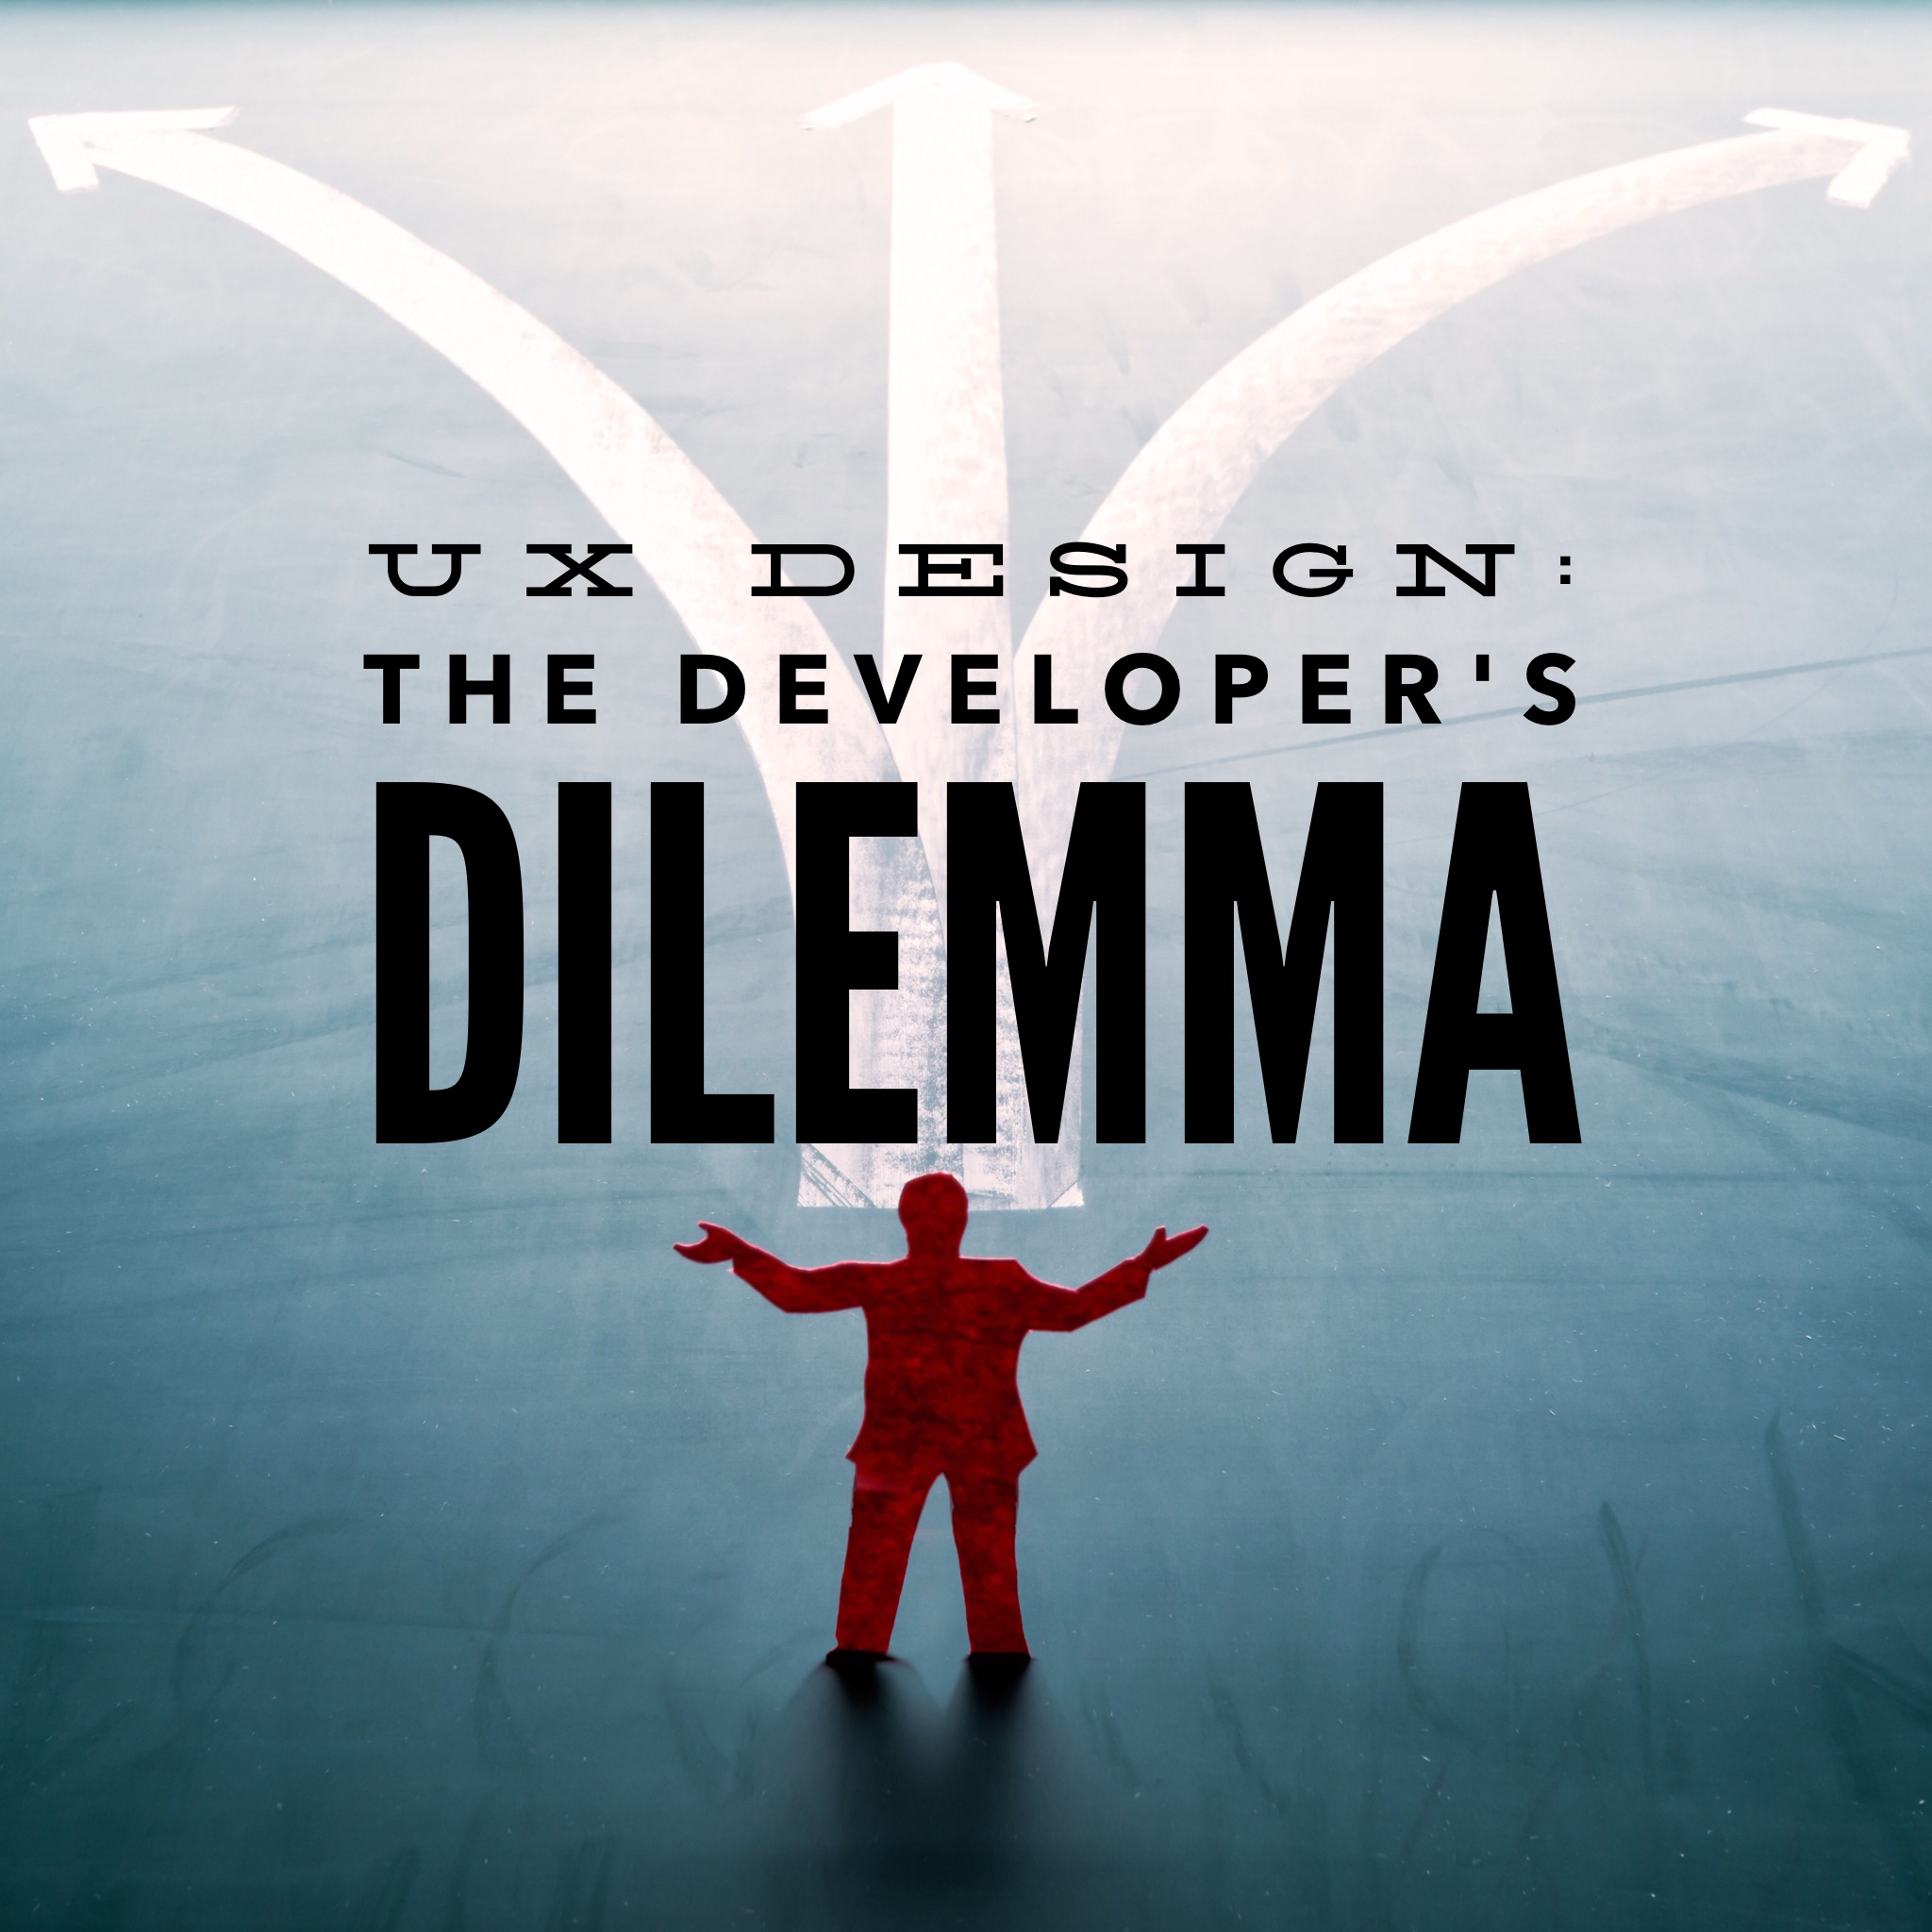 UX Design: The Developer's Dilemma